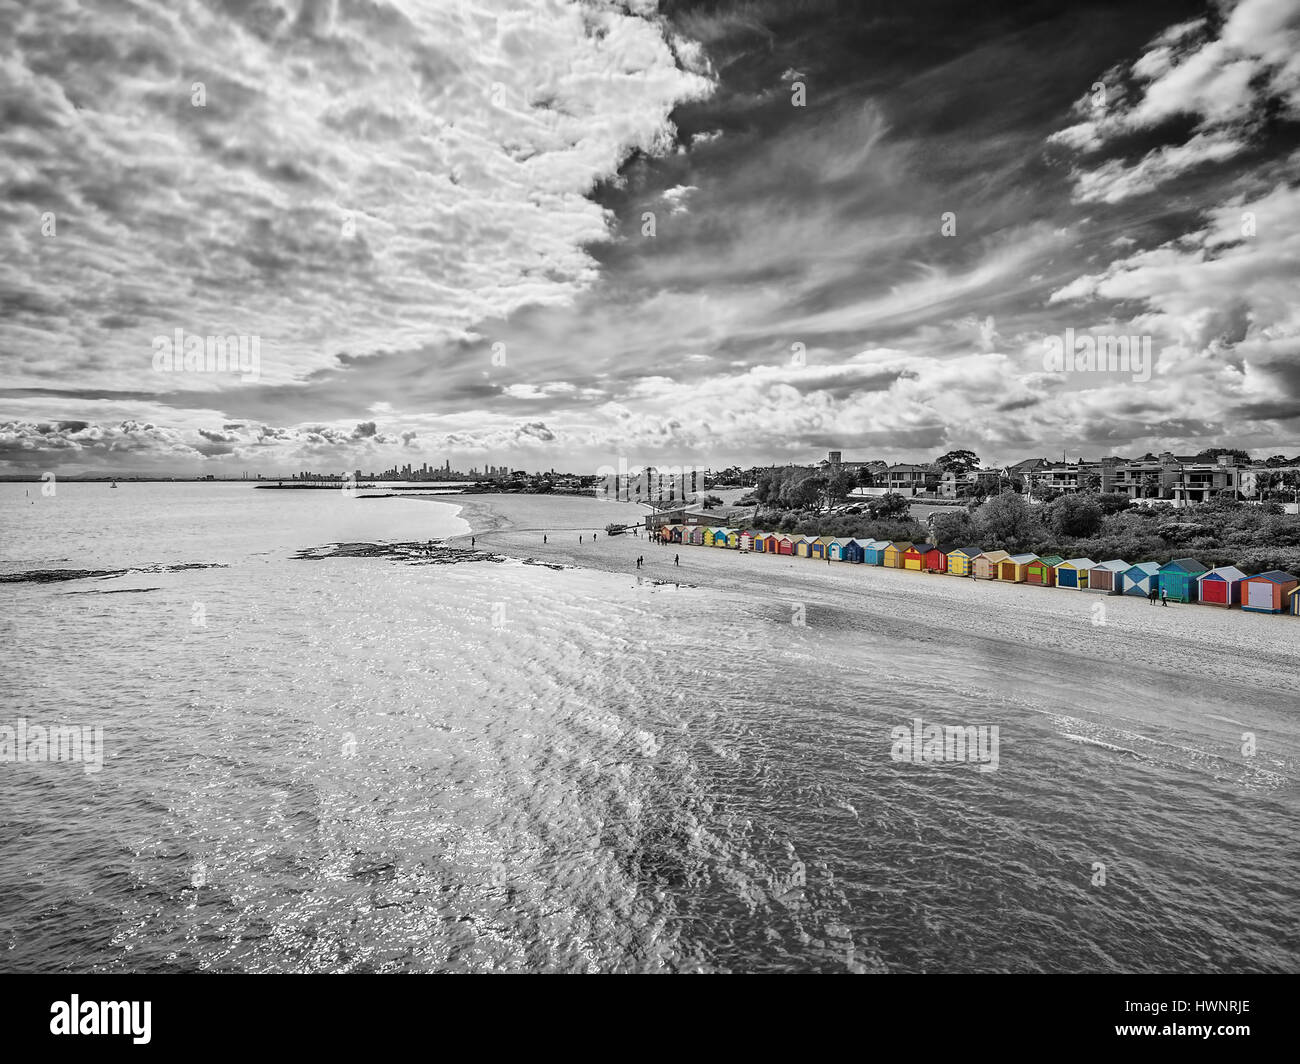 Black and white aerial view of Brighton Beach bathing huts on a bright sunny day. Melbourne, Victoria, Australia - Stock Image